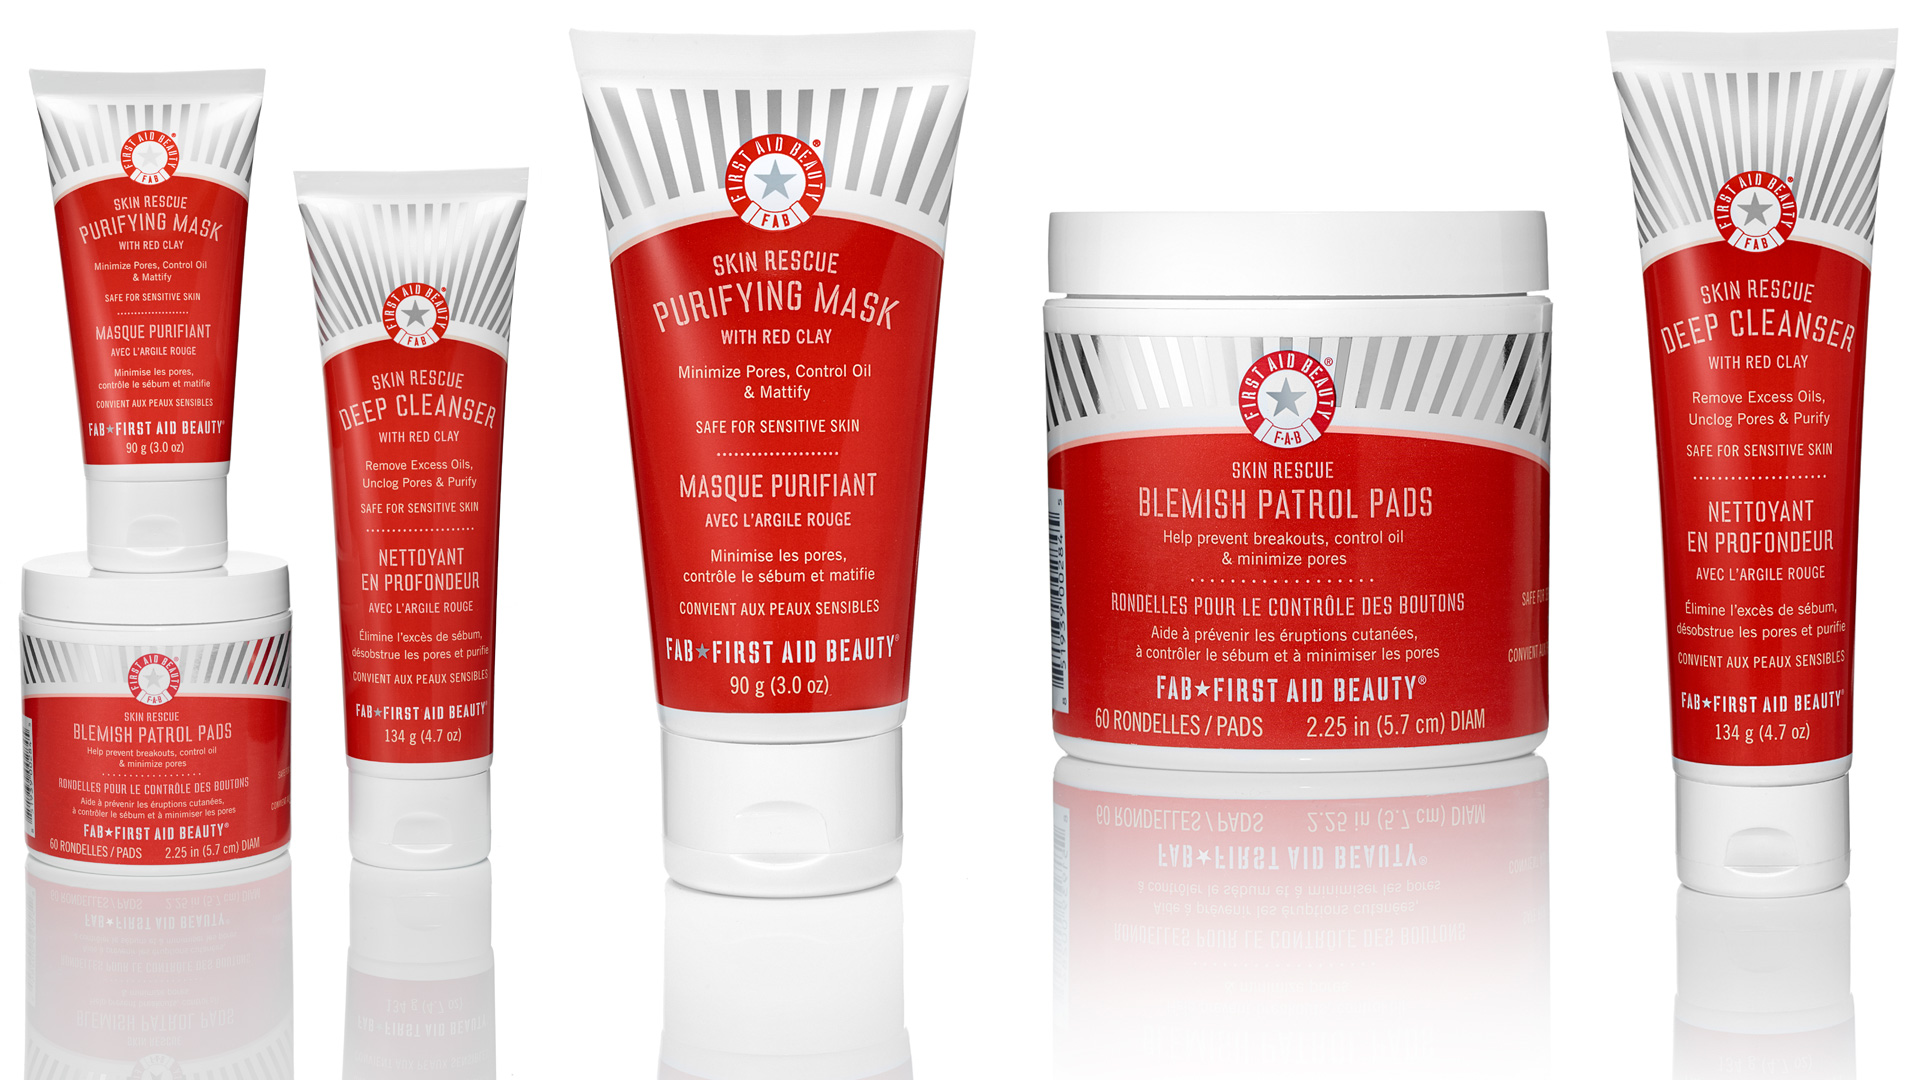 First Aid Beauty's Skin Rescue Collection